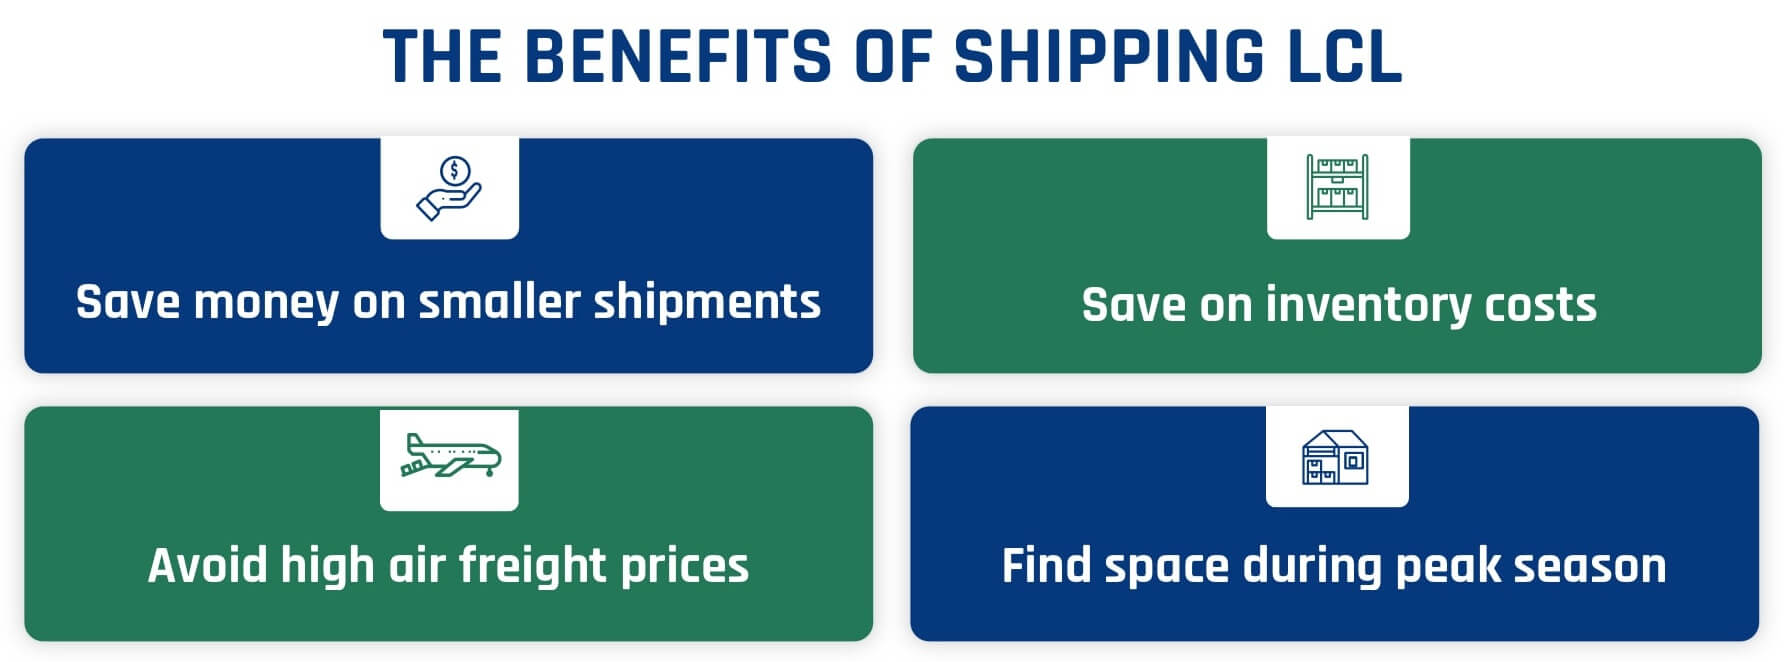 Advantages of LCL Container Shipping